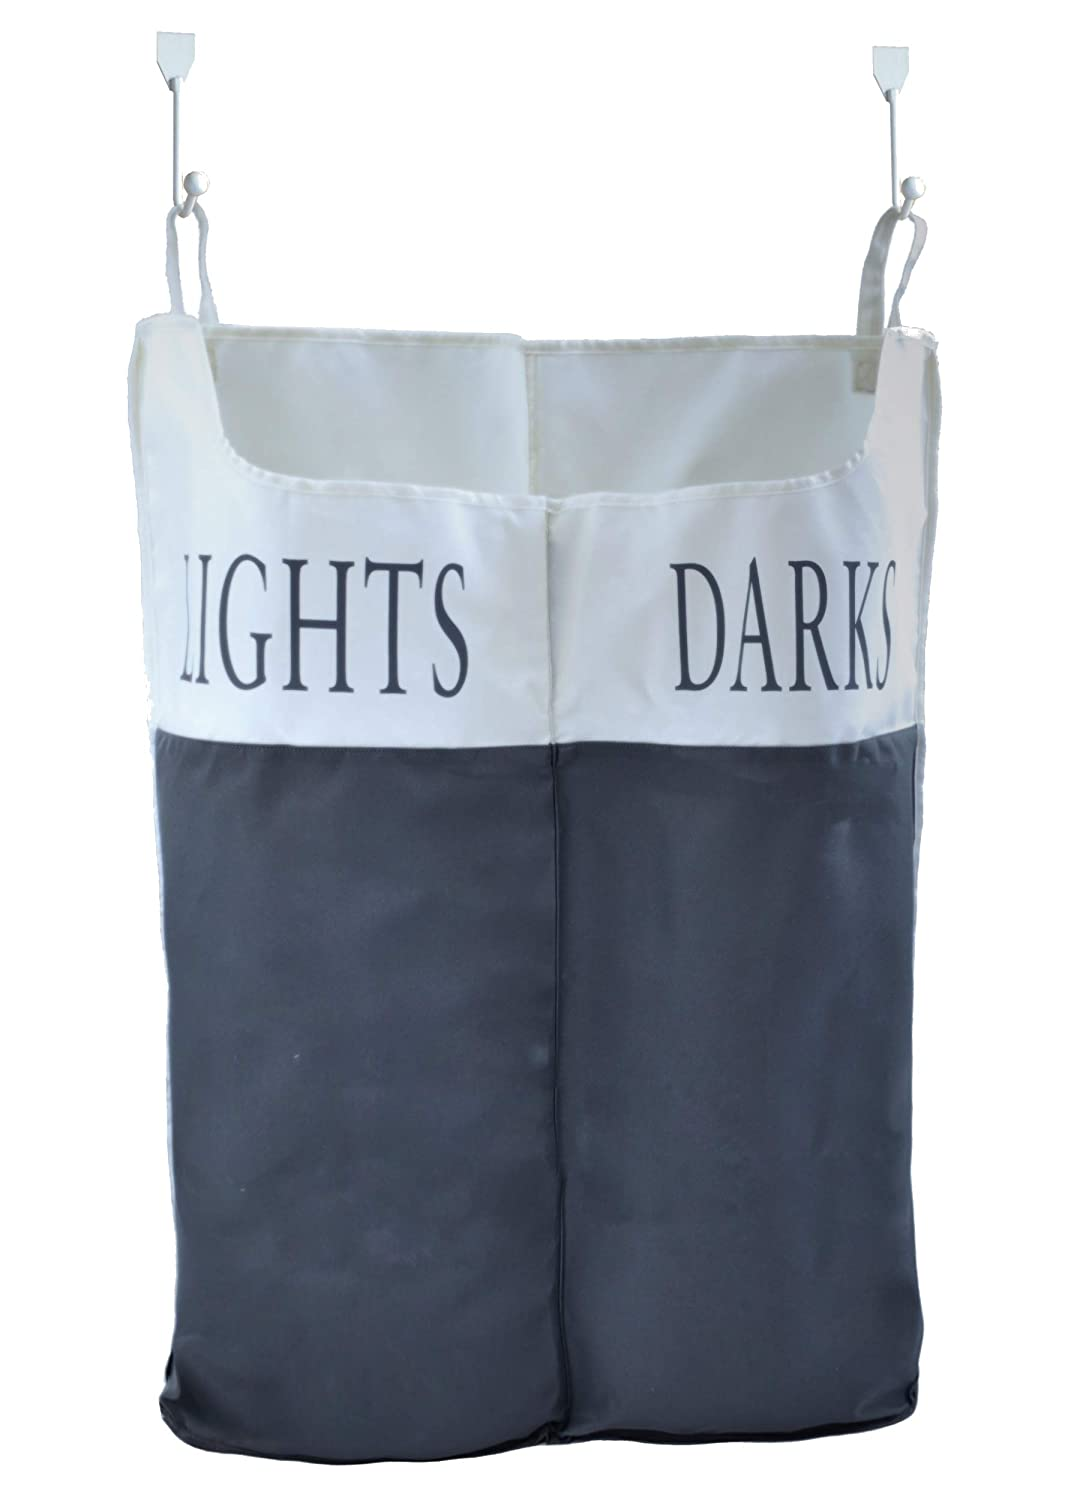 The Fine Living Company USA - Space Saving Lights and Darks Sorter Hanging Laundry Hamper Bag with Free Door Hooks